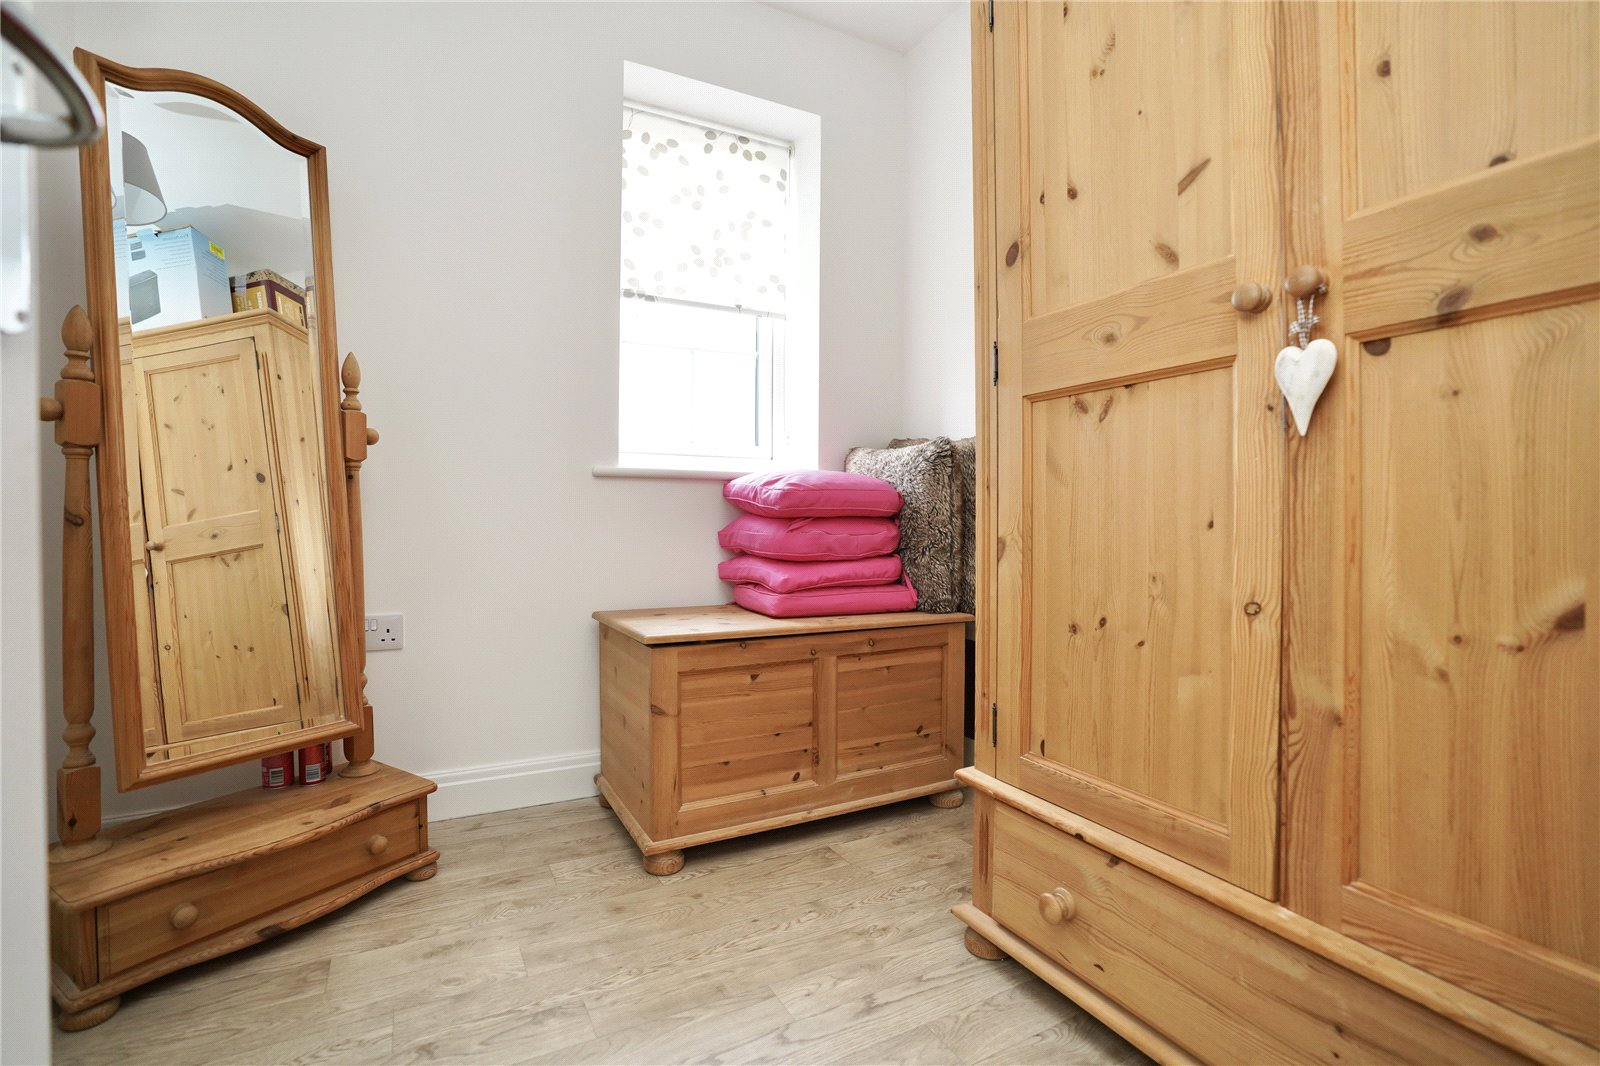 3 bed house for sale in Sawtry, PE28 5ZJ  - Property Image 10